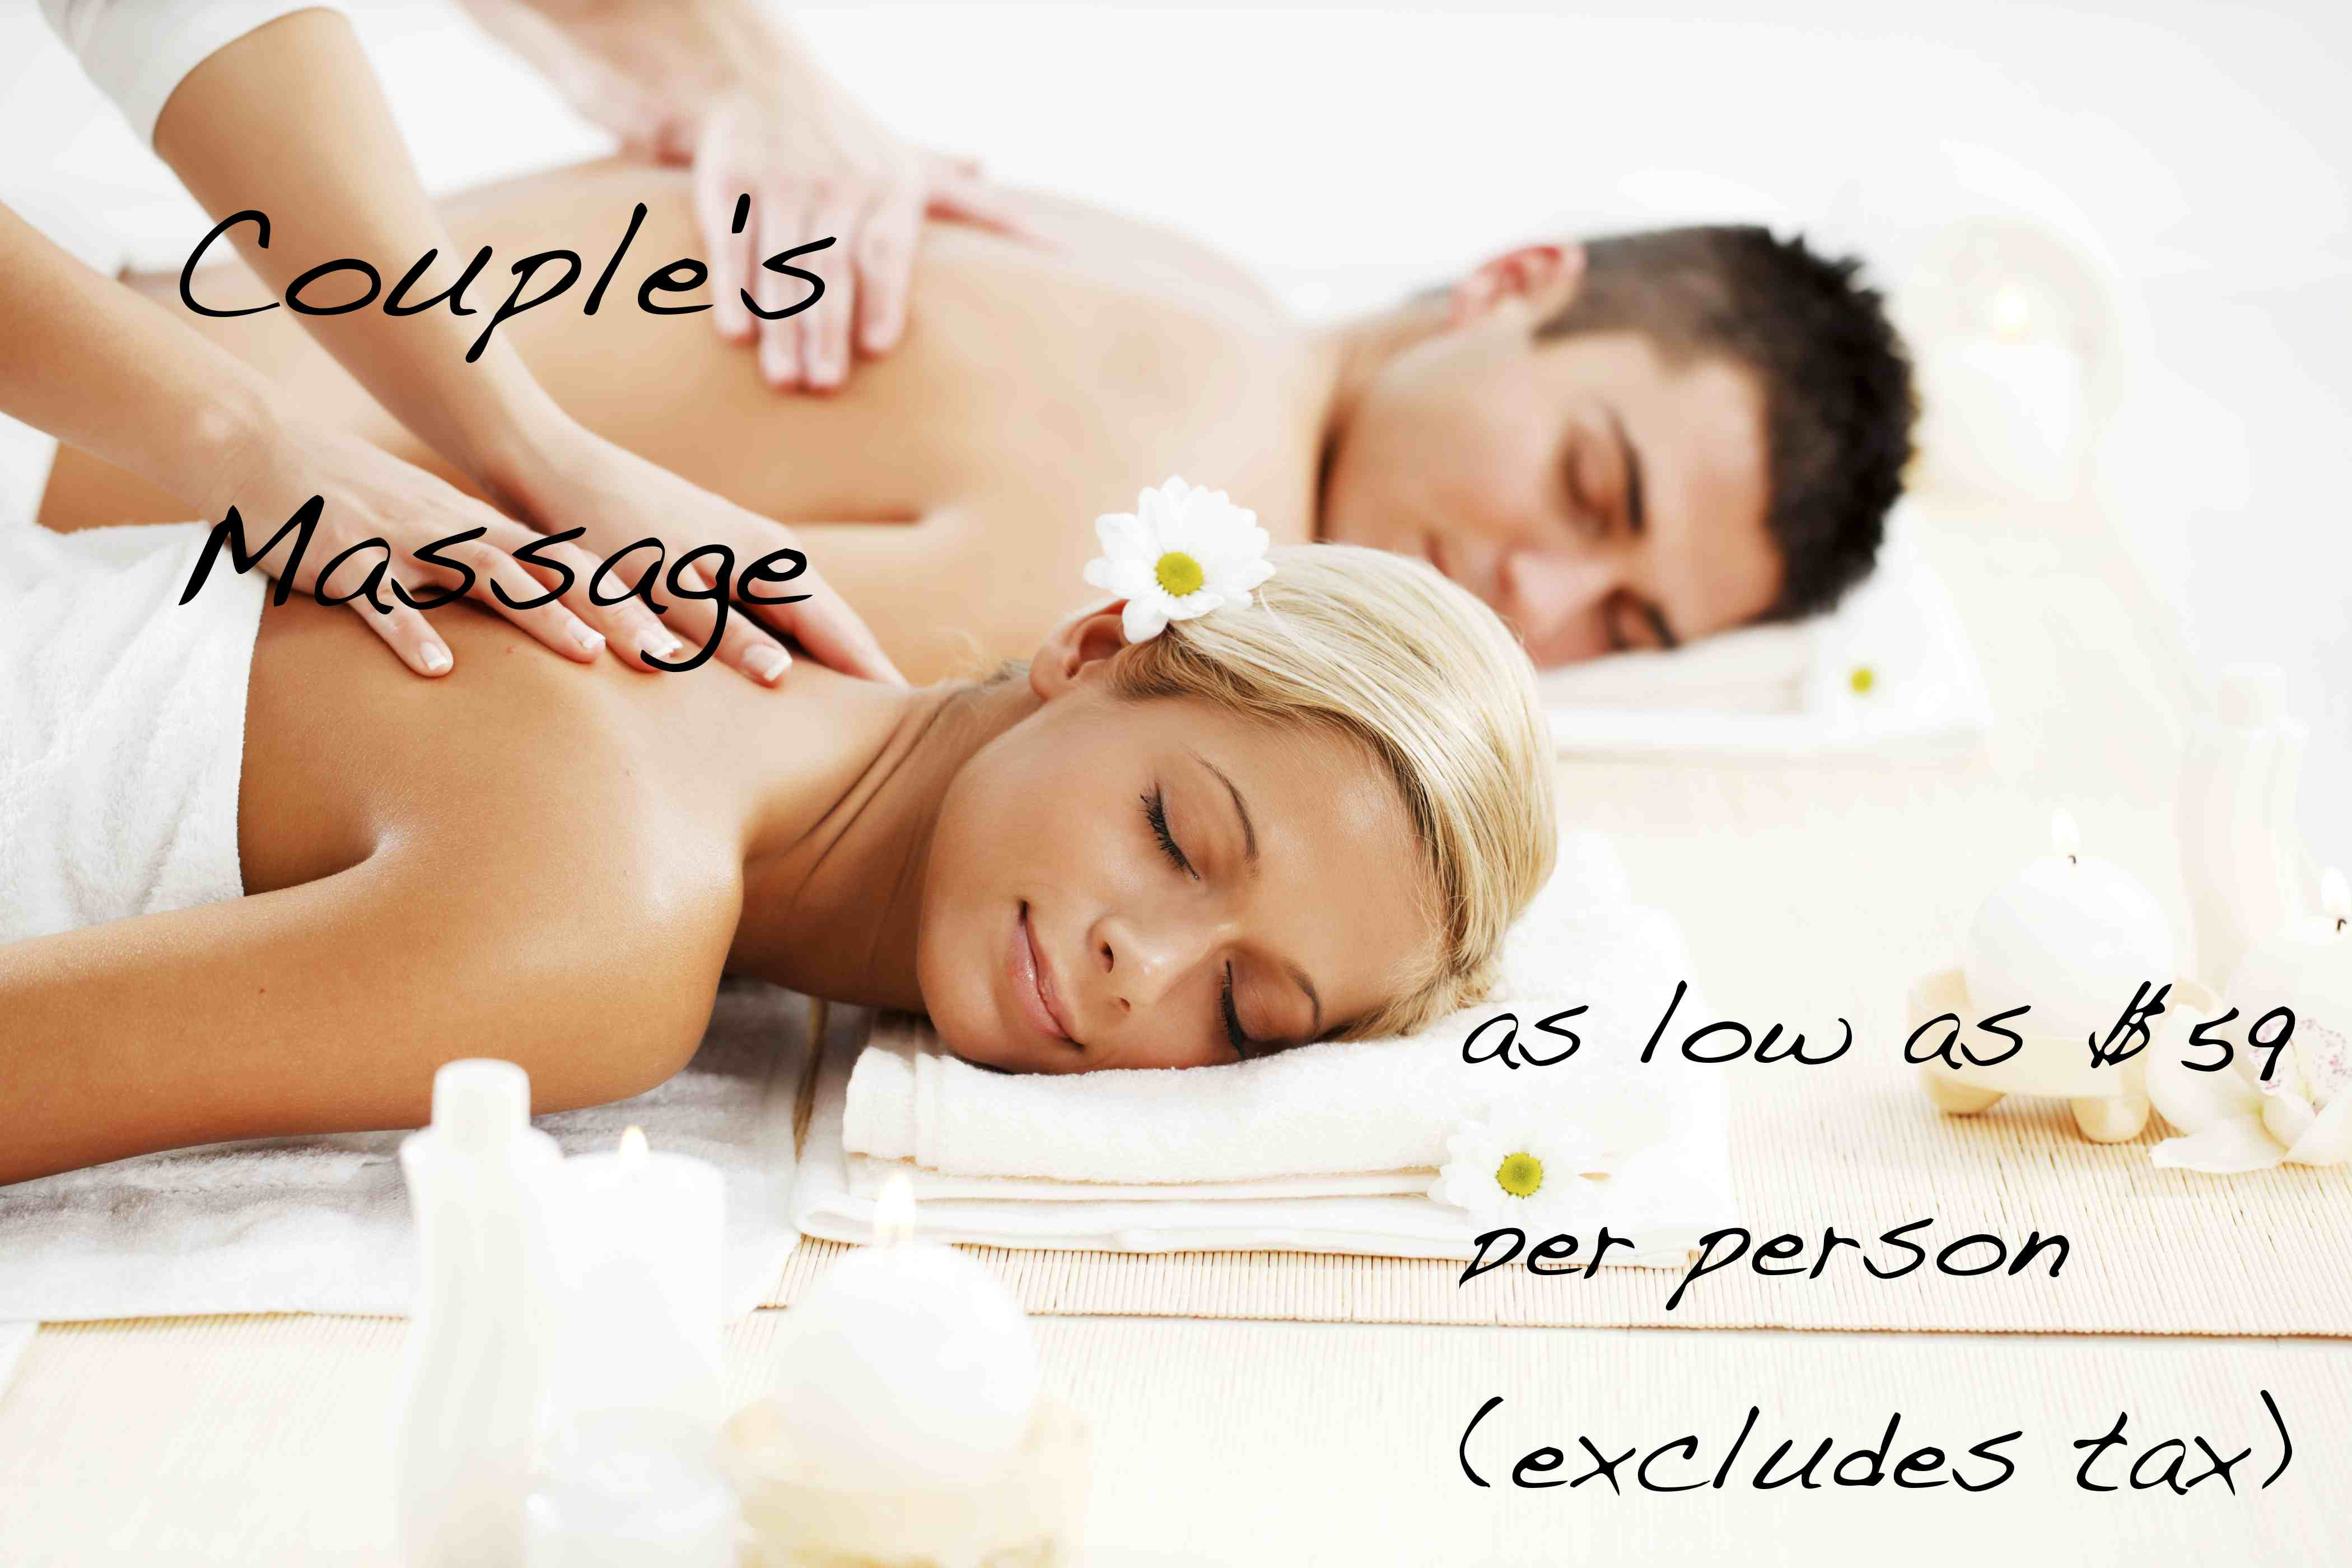 Couple's Massage Special